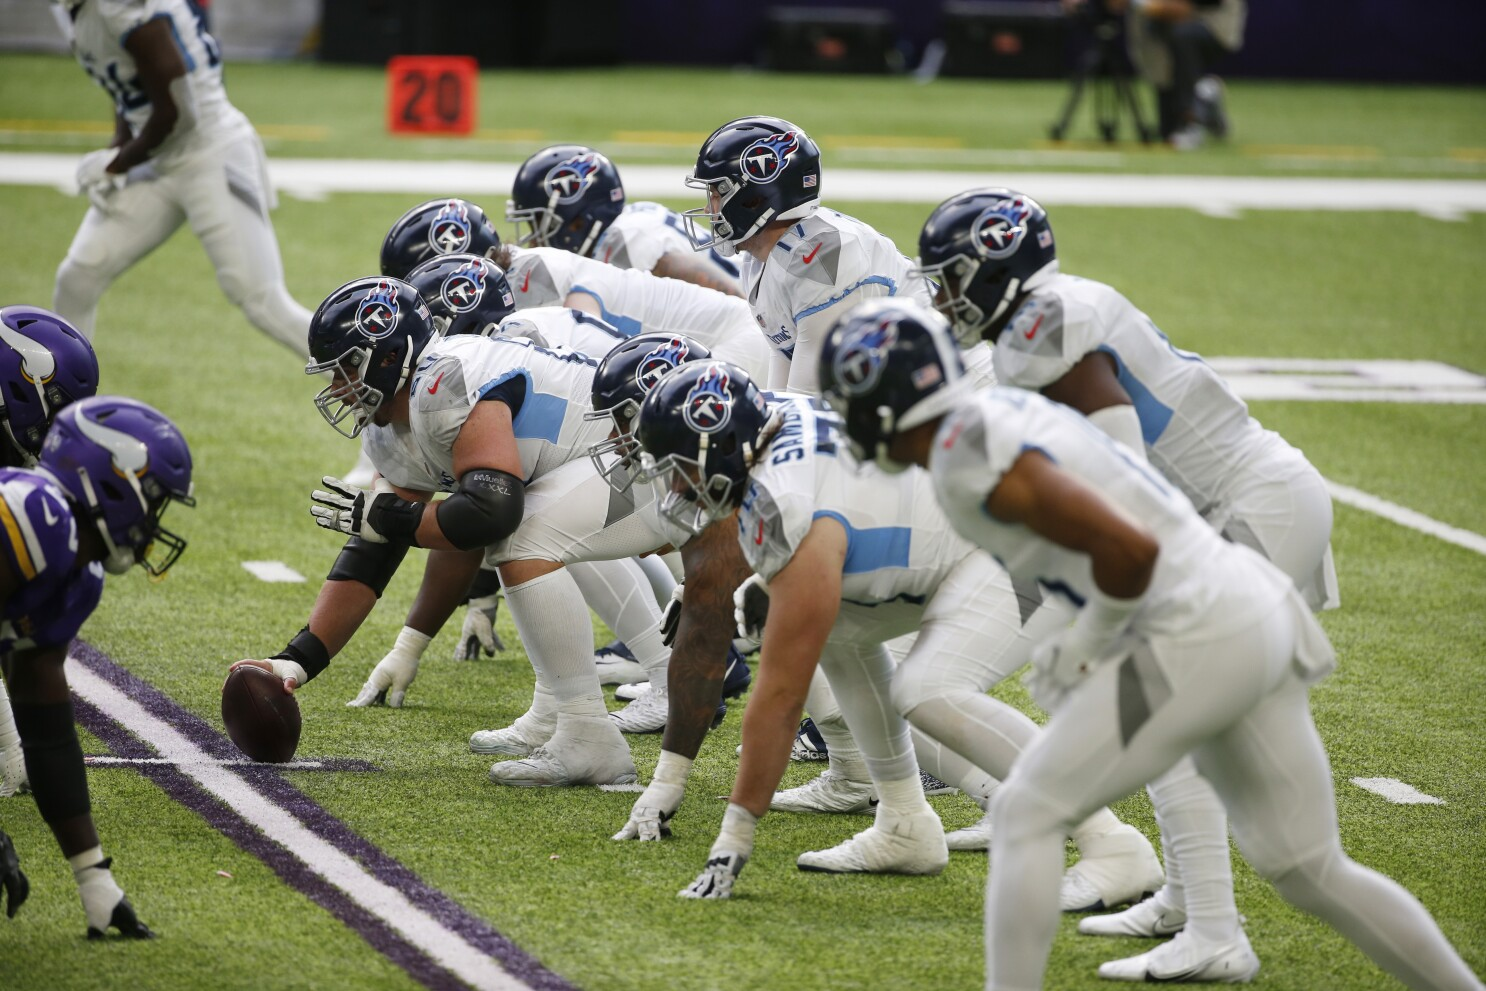 Titans Covid 19 Outbreak Presents The Nfl With A Real Test Los Angeles Times